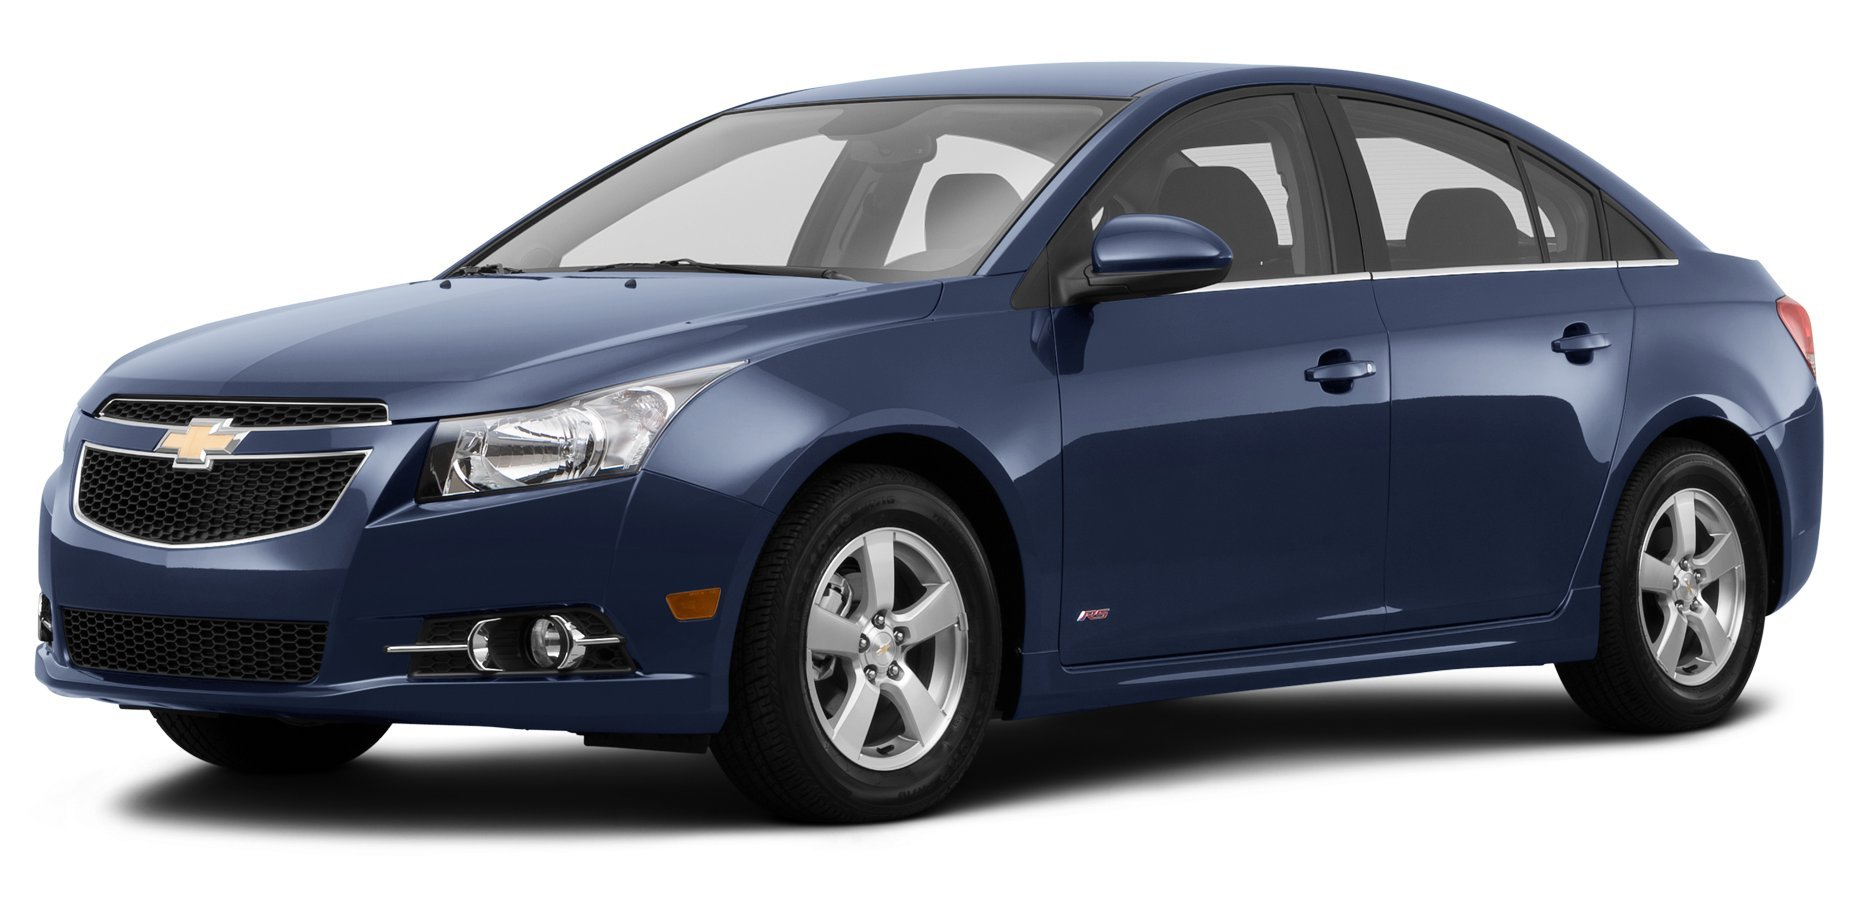 Cruze chevy cruze 2013 eco : Amazon.com: 2014 Chevrolet Cruze Reviews, Images, and Specs: Vehicles